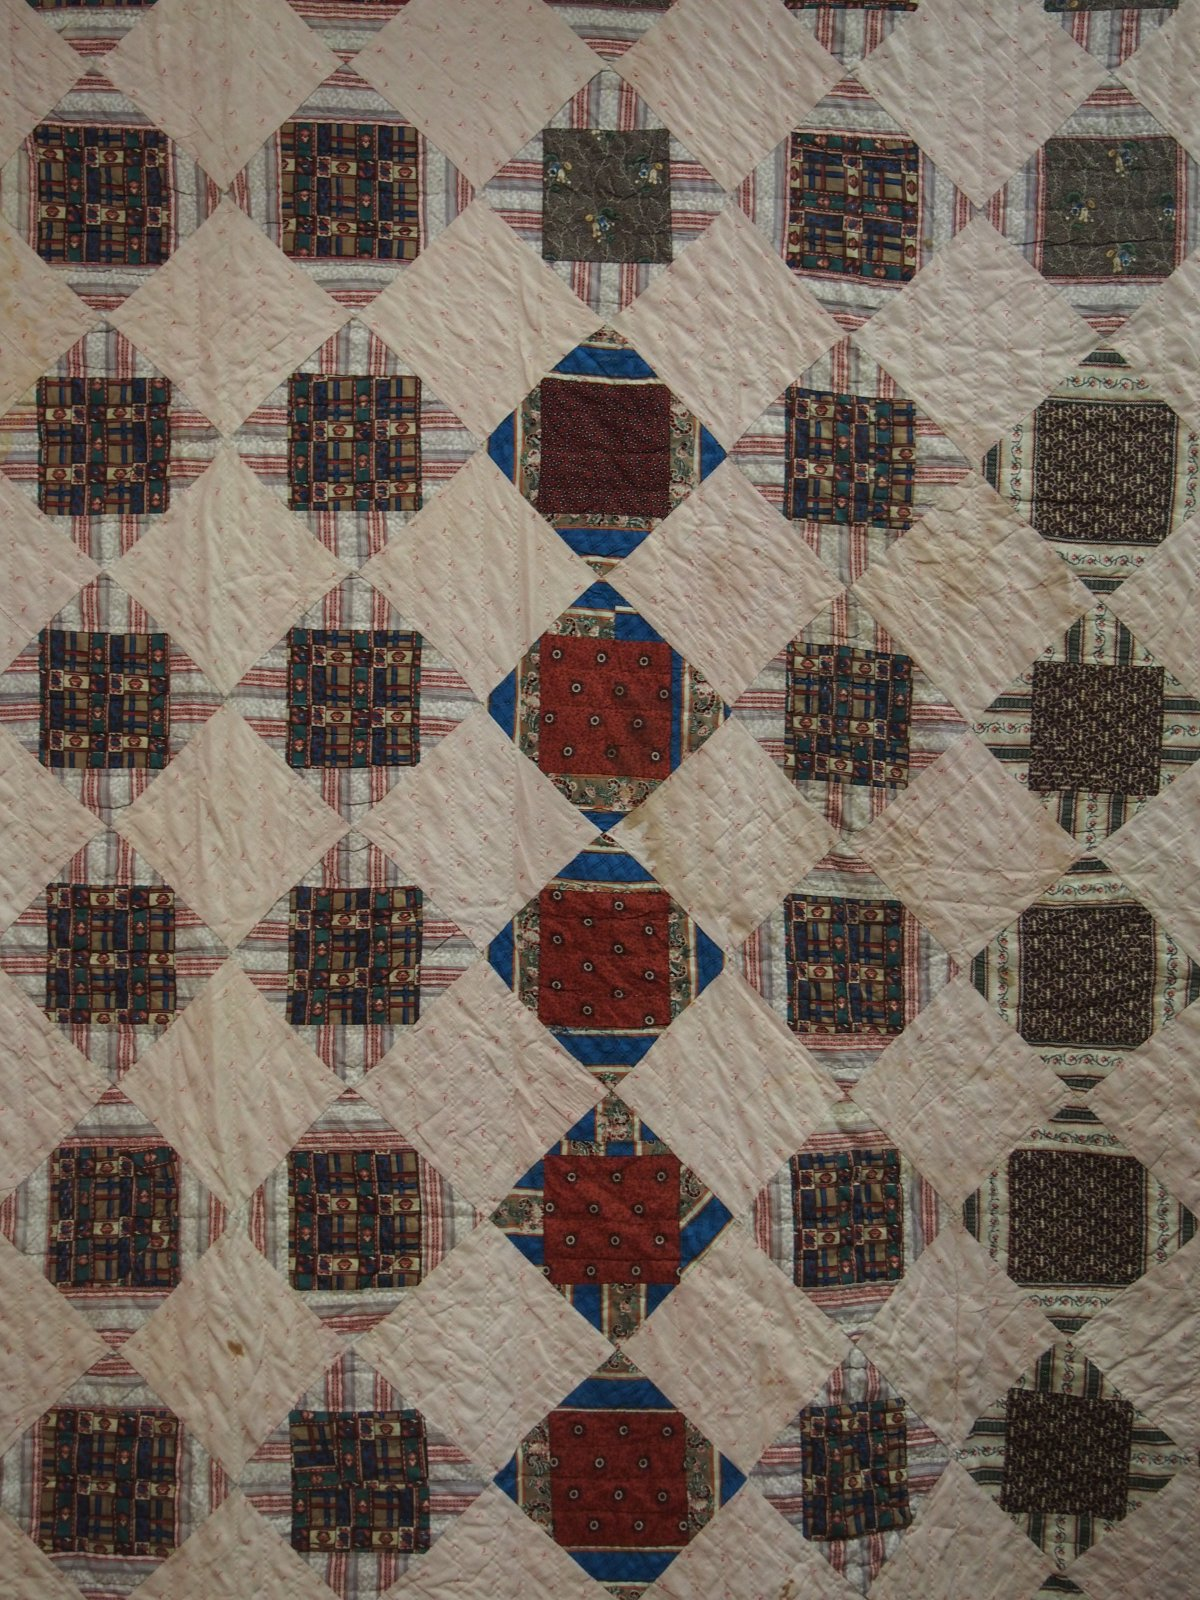 JESSE'S SQUARES OR ECONOMY PATCH CUT CORNERS ANTIQUE QUILT